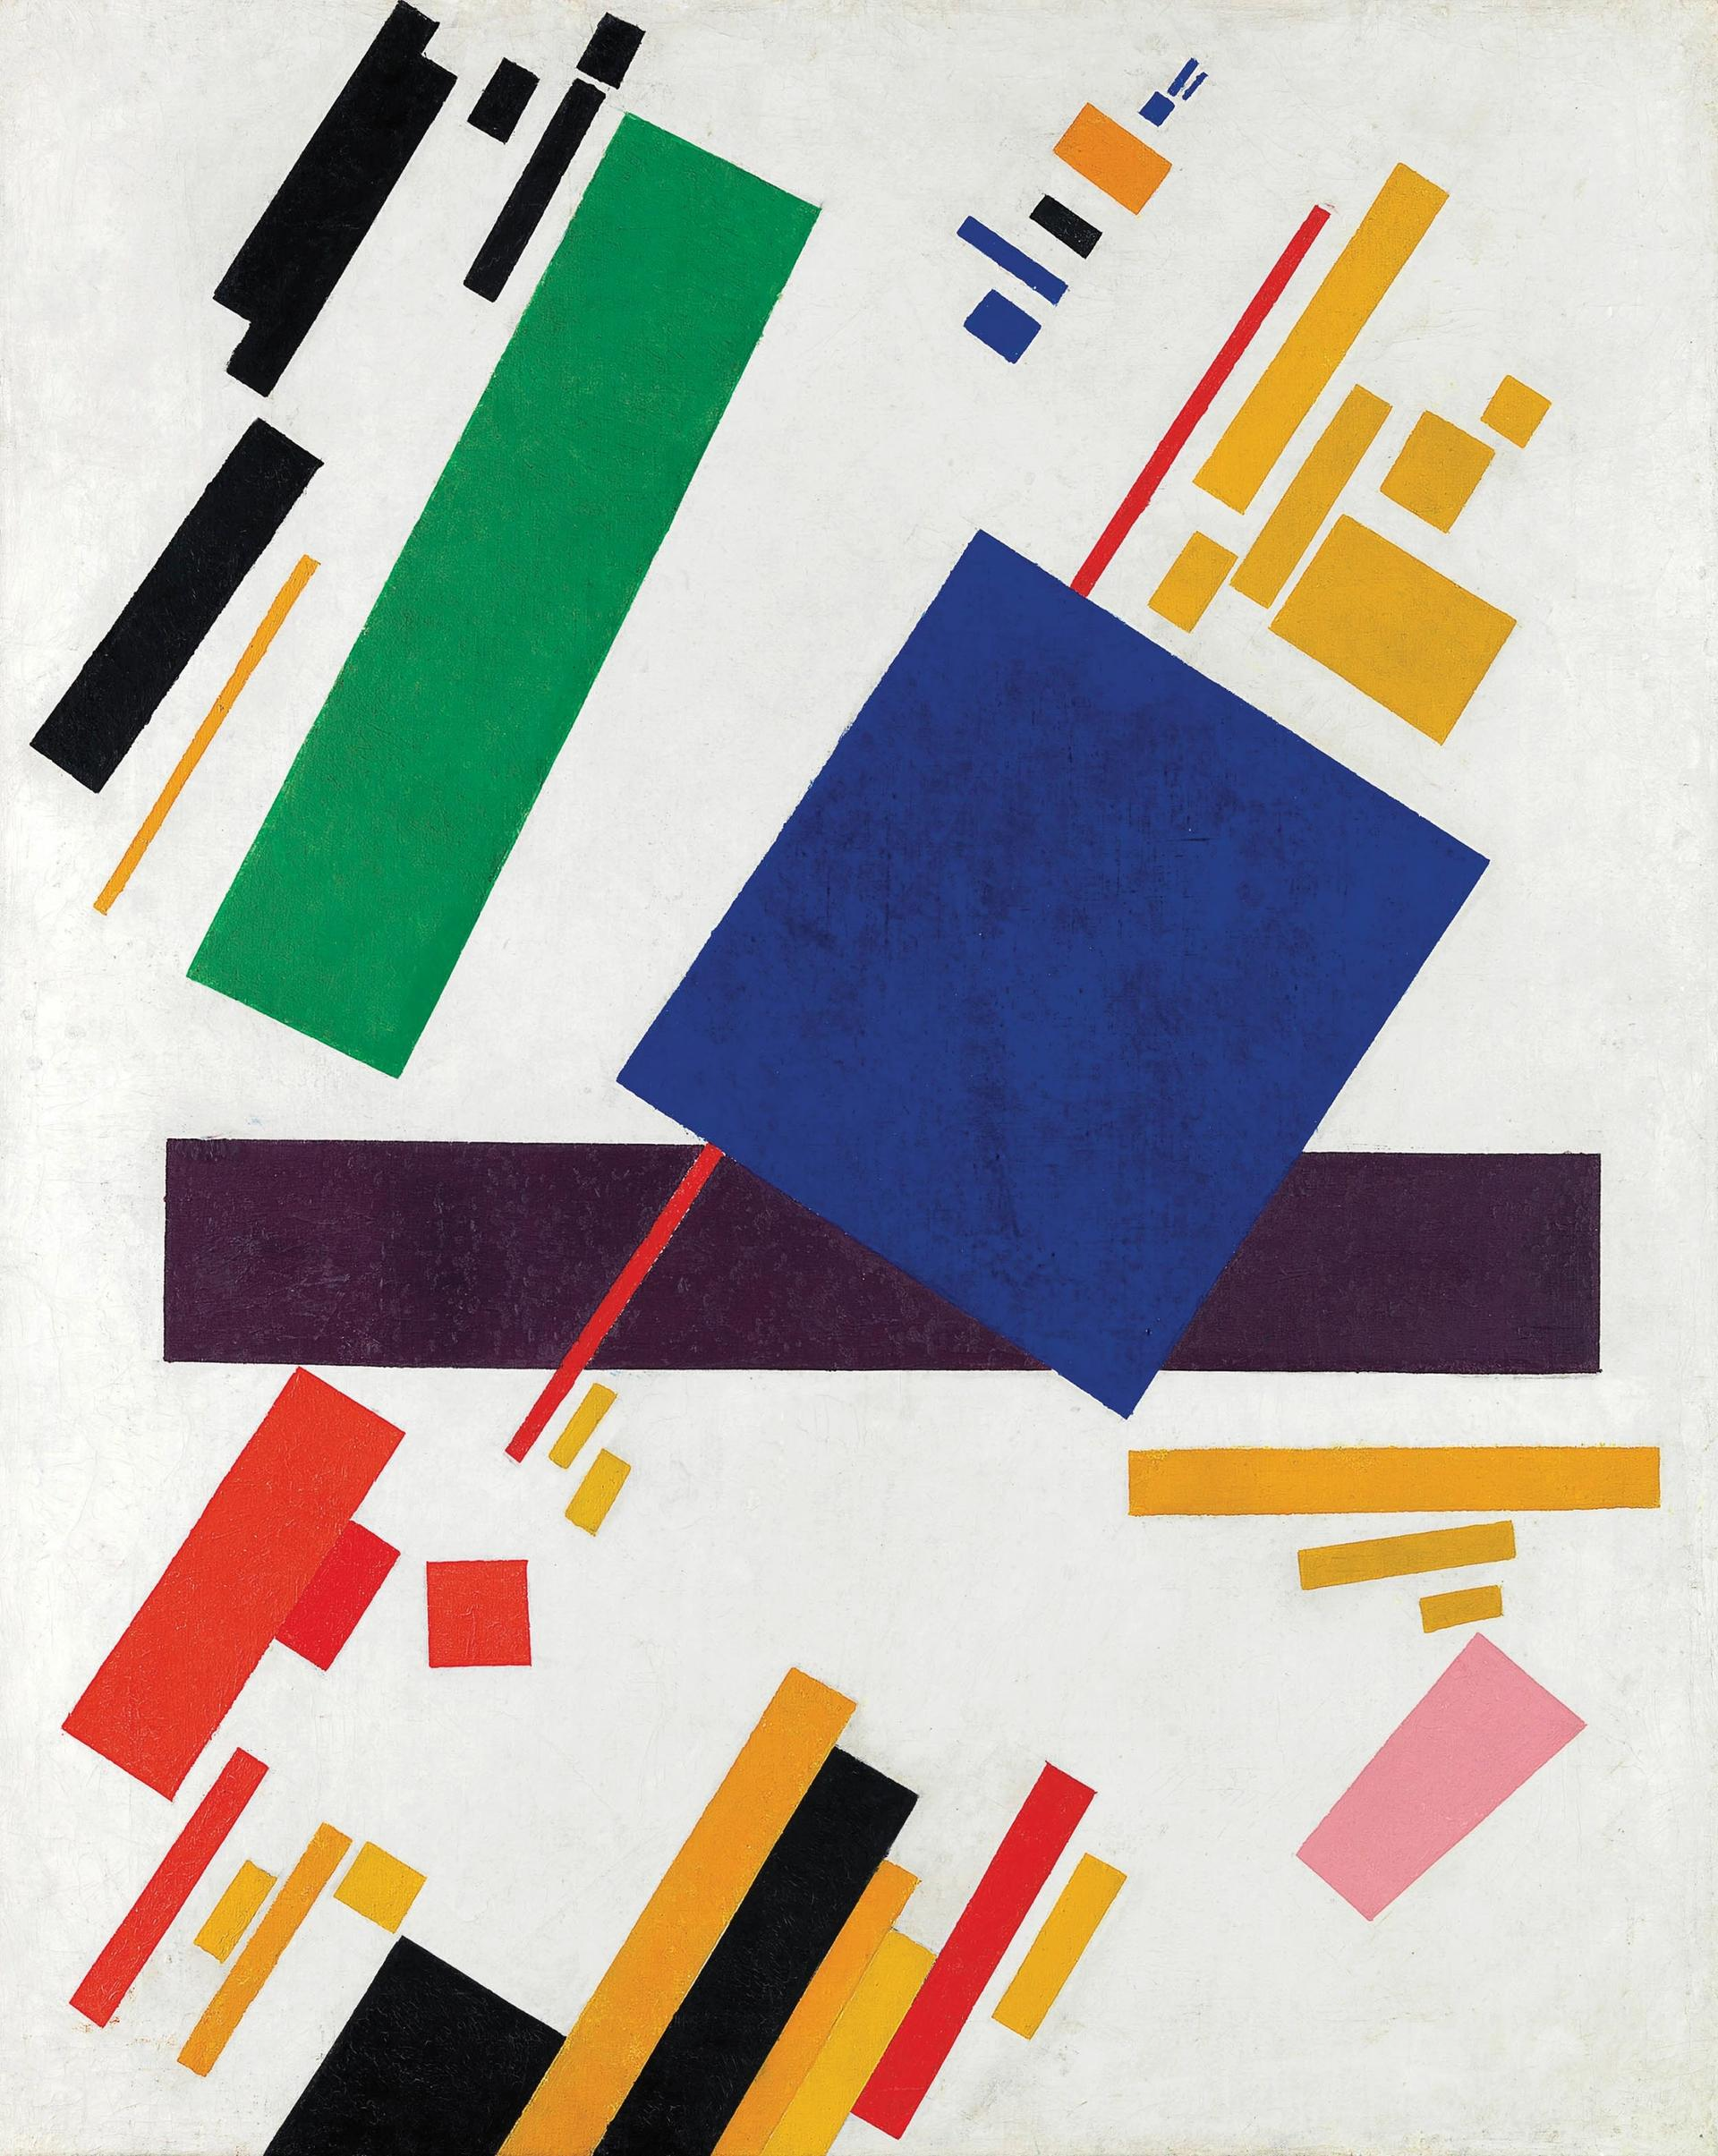 Kazimir Malevich's Suprematist Composition (1916), which made an artist record $85.8m at Christie's in May 2018 Christie's Images